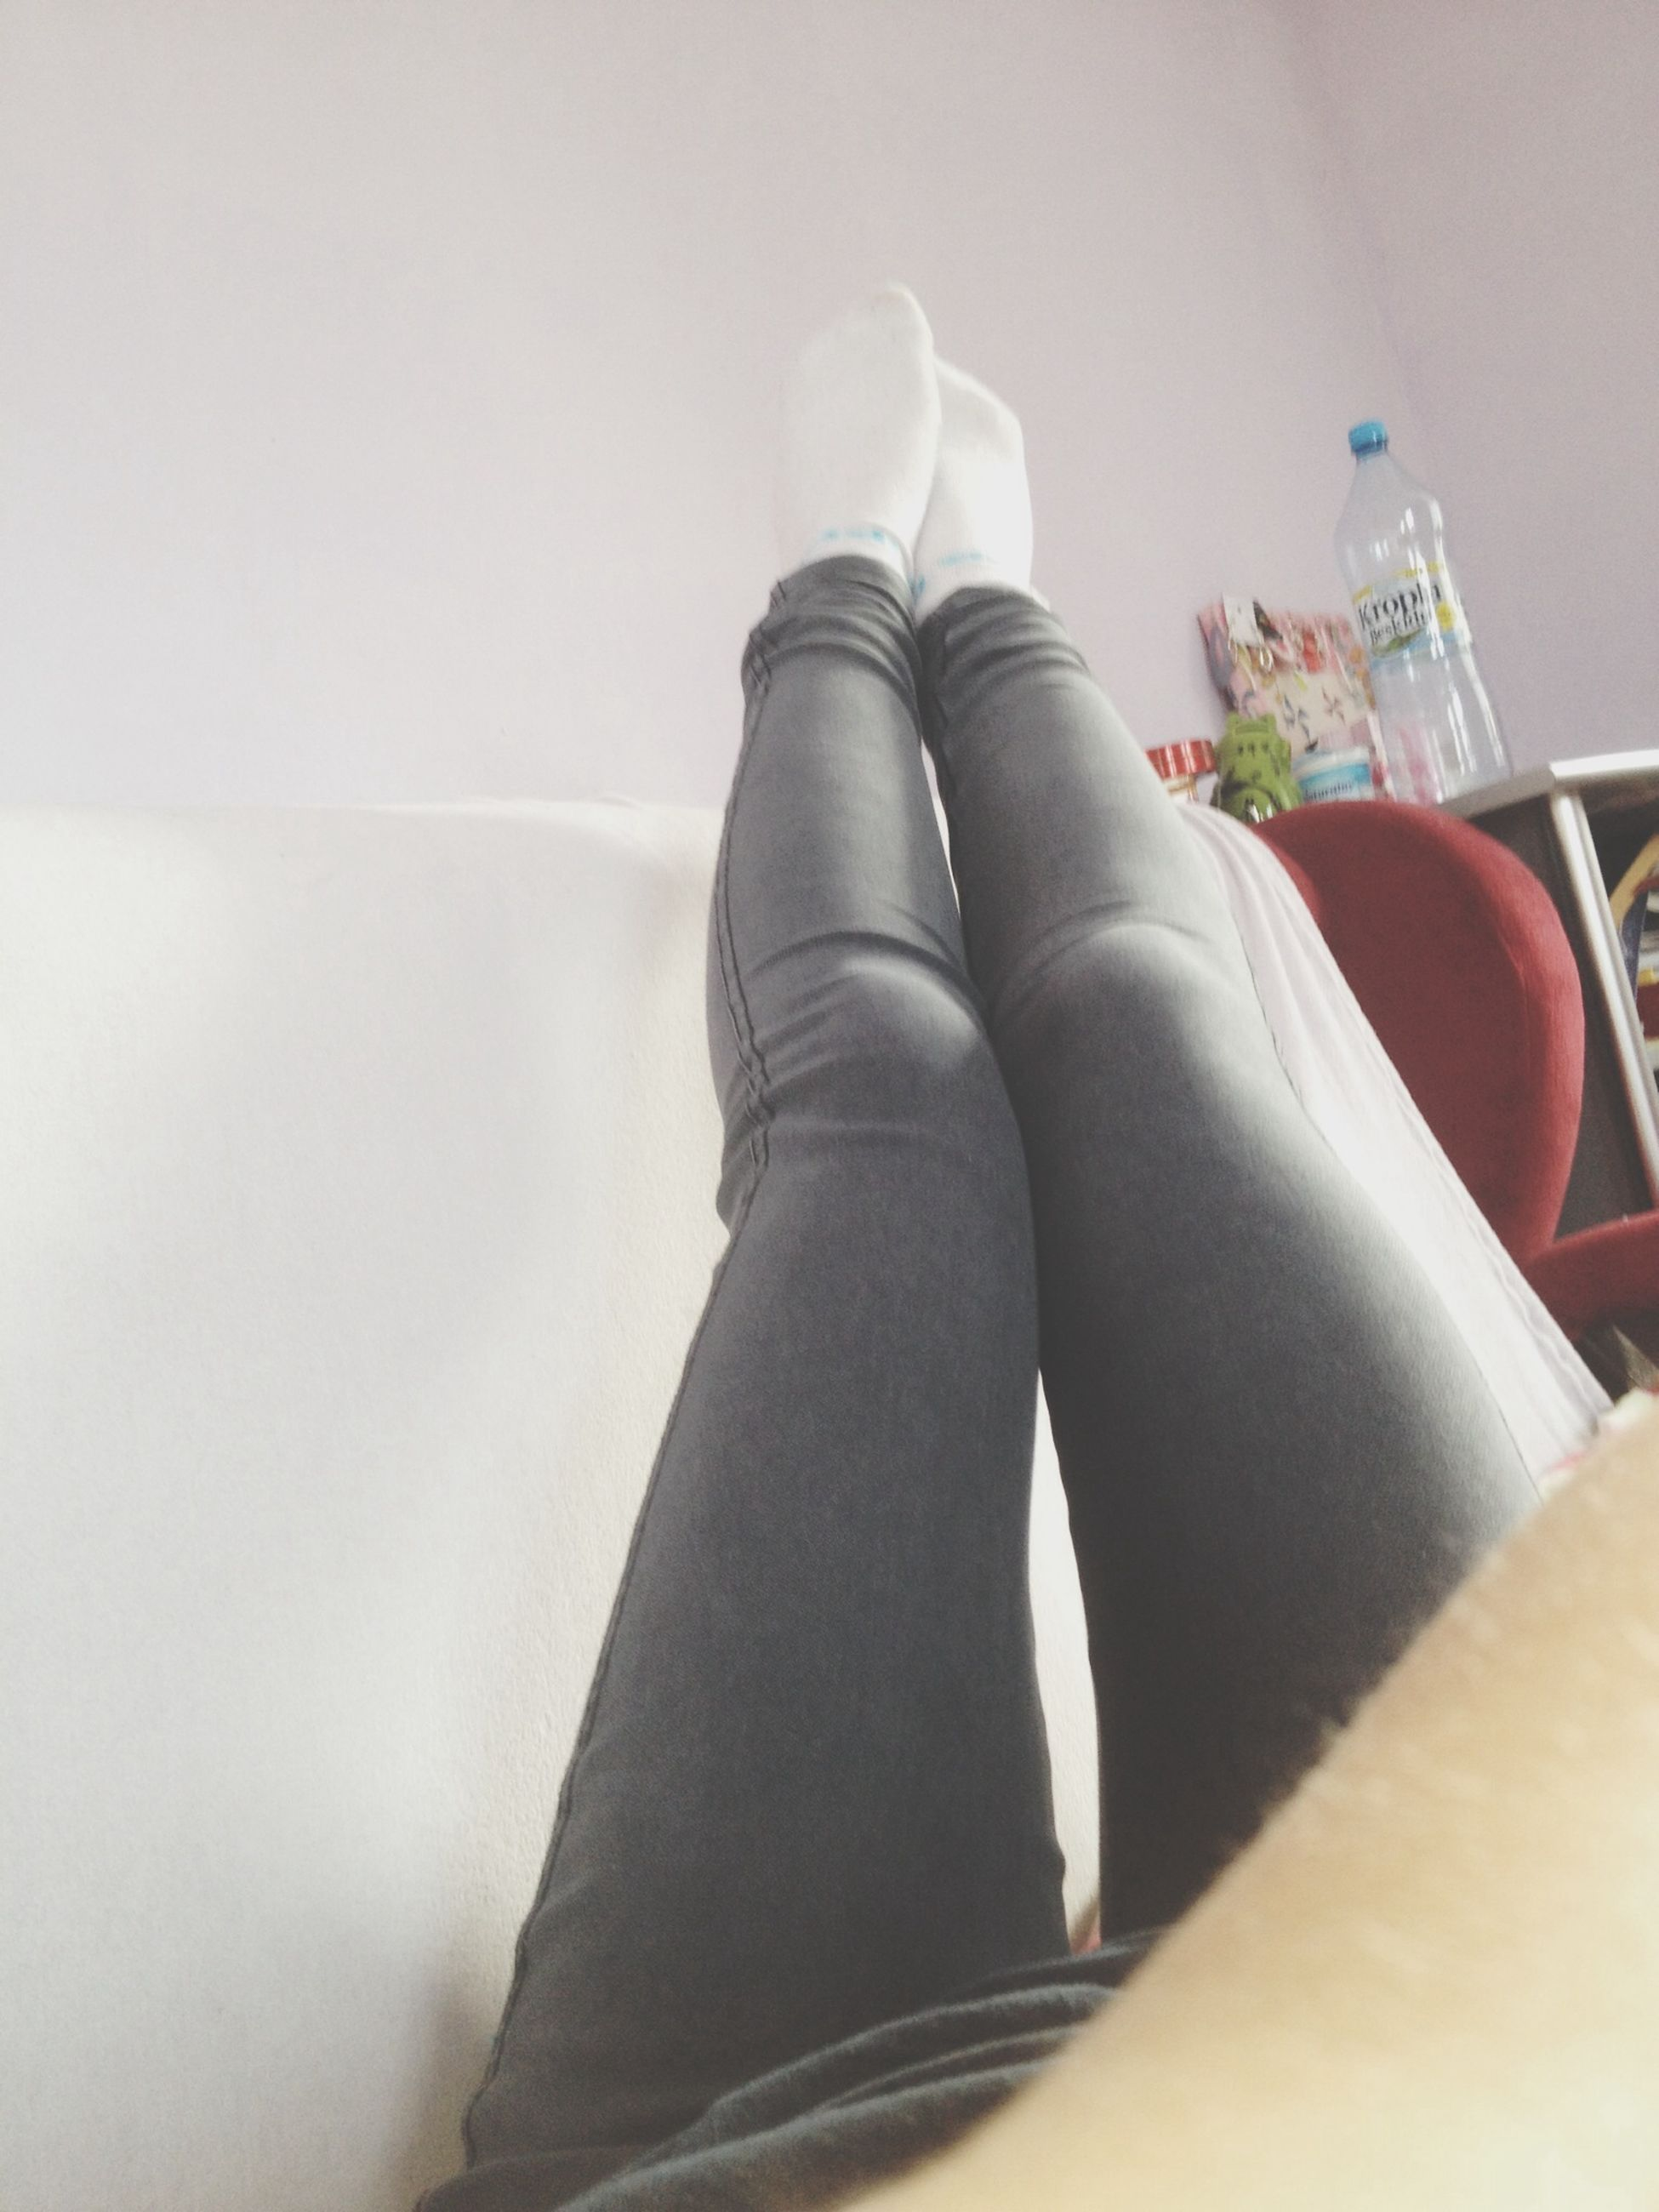 indoors, low section, person, home interior, domestic room, bed, relaxation, flooring, domestic life, shoe, fashion, femininity, bedroom, lifestyles, sensuality, sitting